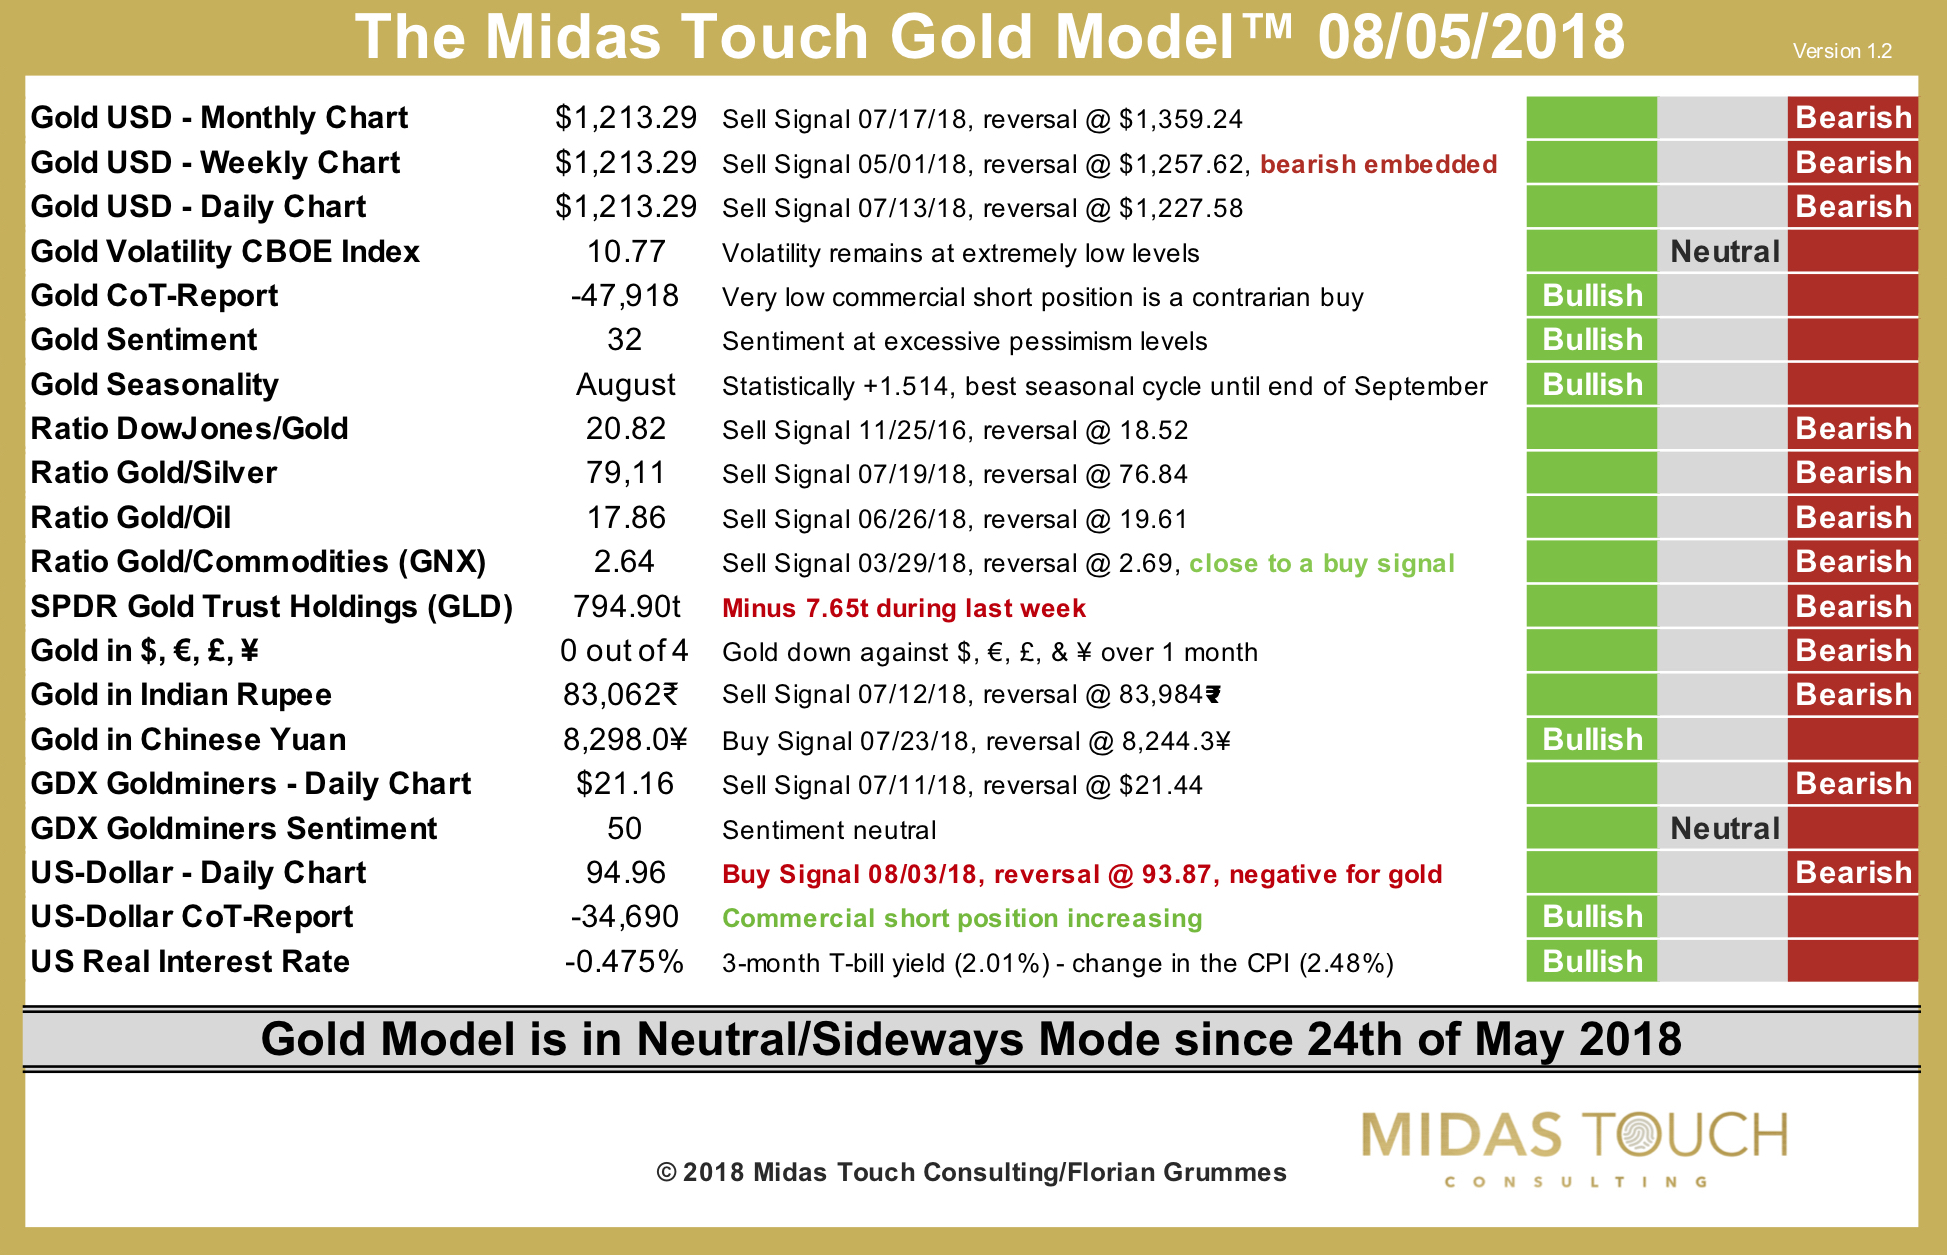 The Midas Touch Gold Model™ as of August 5th, 2018